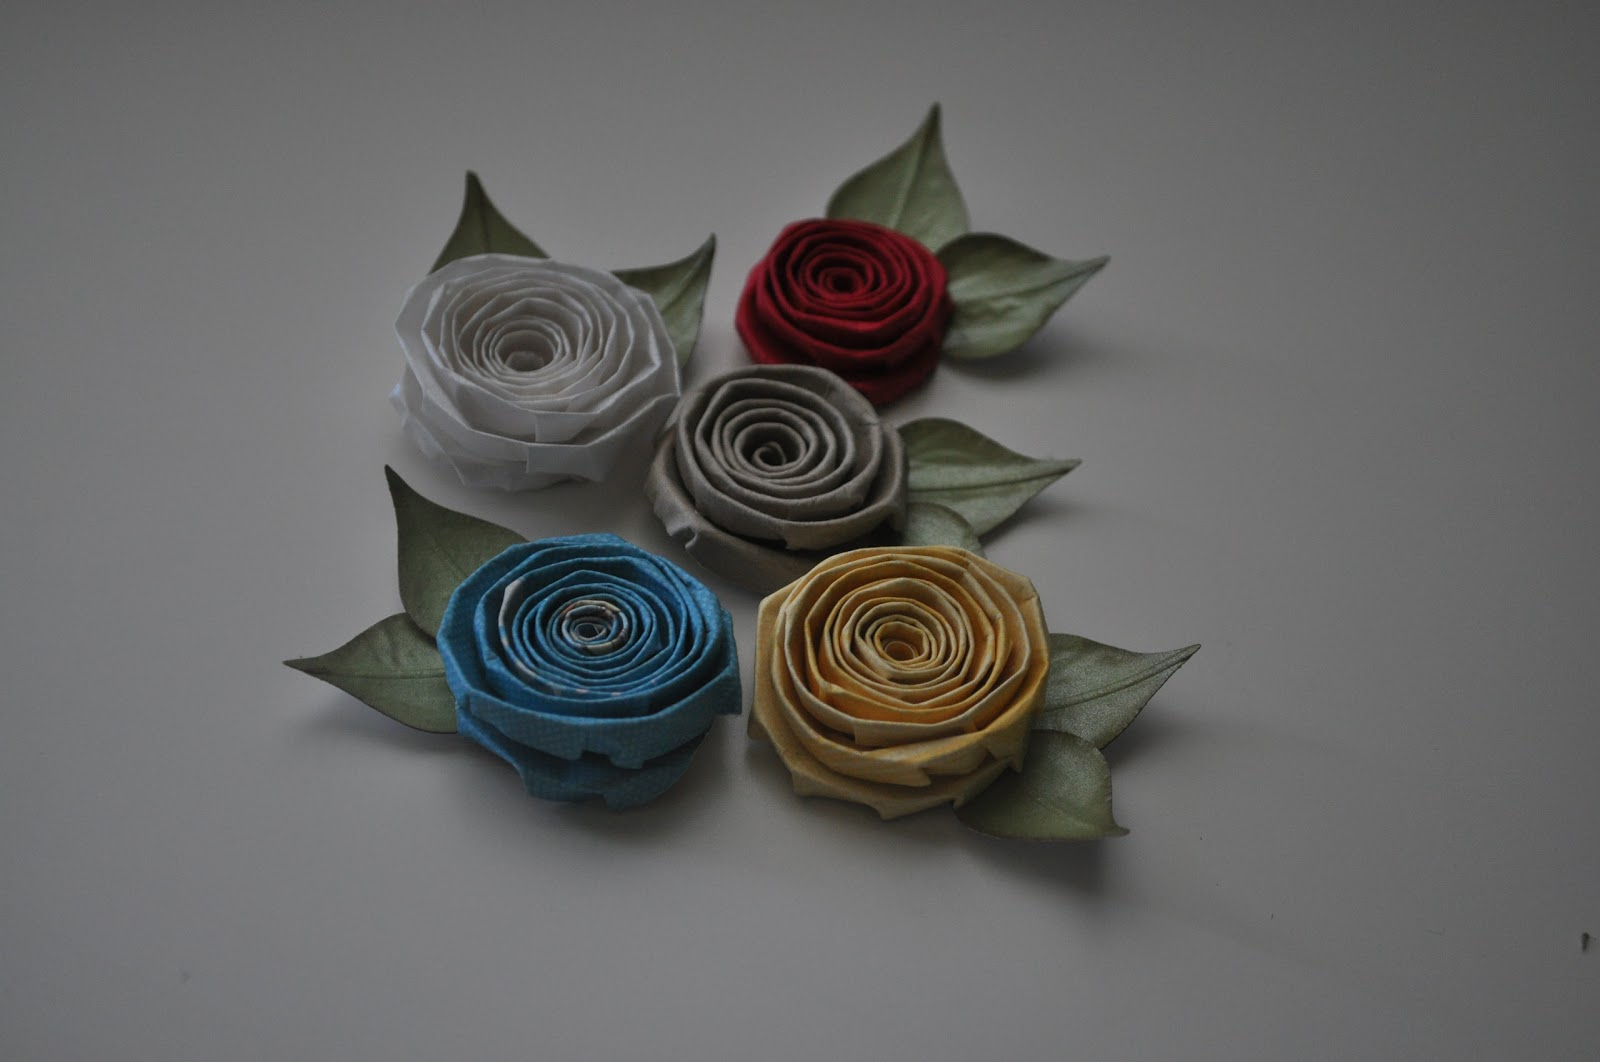 Lc card making corner handmade paper flowers handmade paper flowers hello wow its been almost two months since my last post ive been pretty busy creating and havent had the time to post all my mightylinksfo